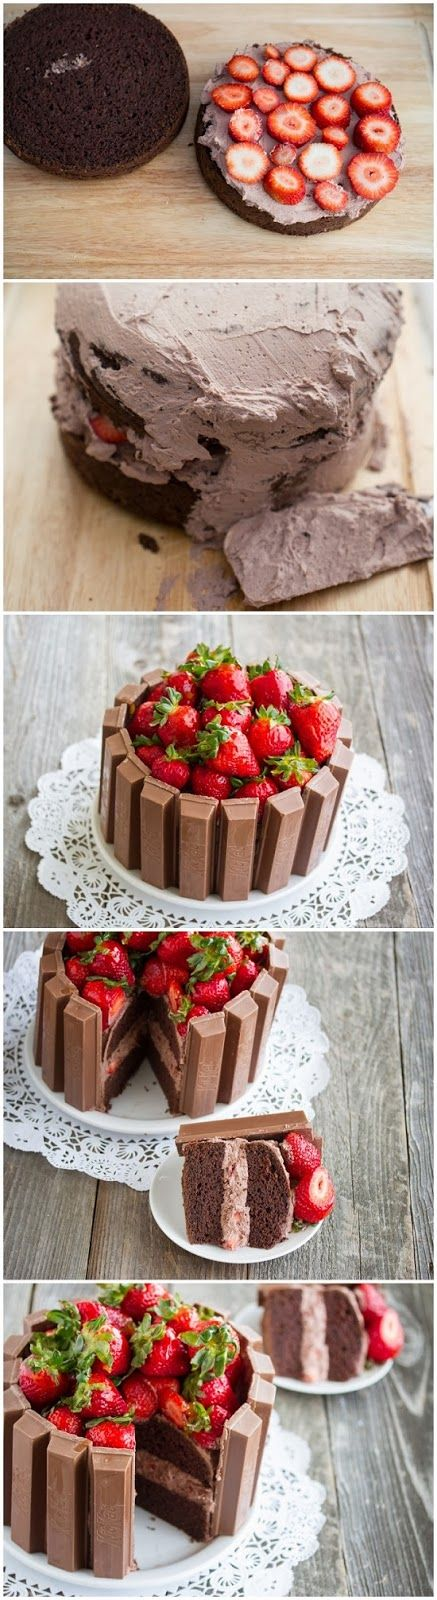 """""""I baked a regular chocolate cake, sliced it in half, did a chocolate whipped cream and fresh strawberries filling, then spread more whipped cream outside the cake before sticking on the kit kats and topping with piles of fresh strawberries."""""""